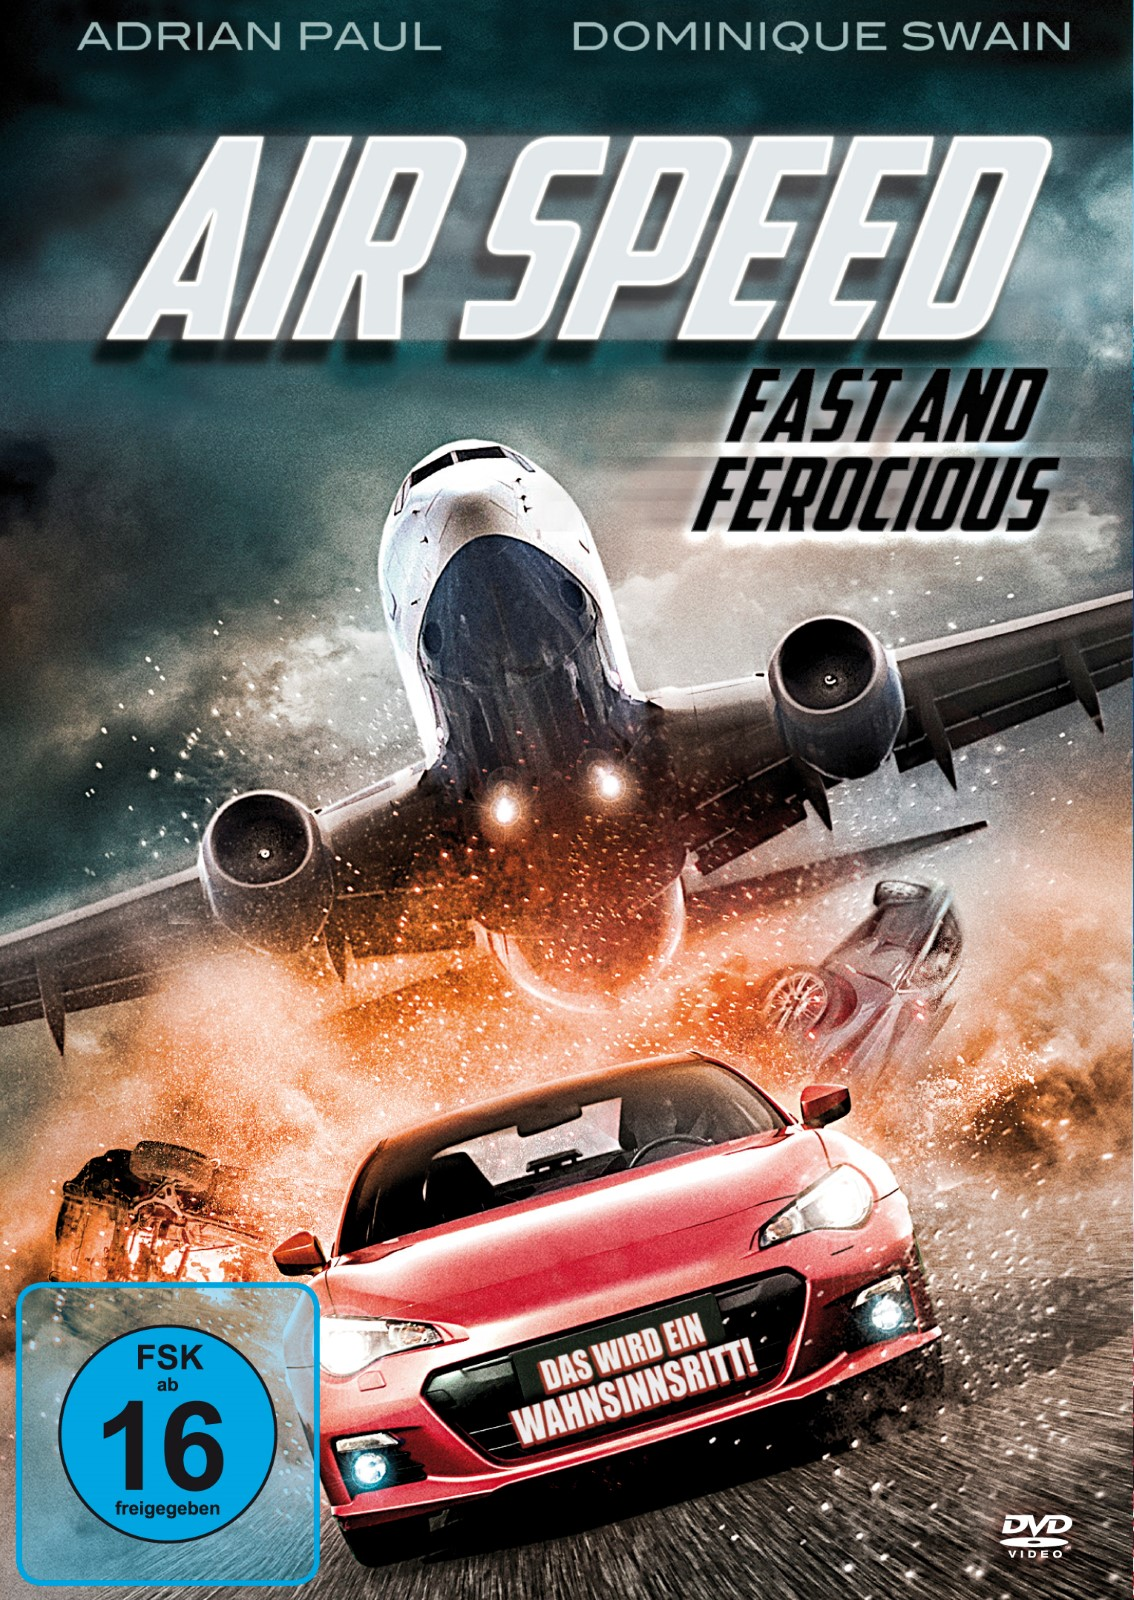 Air Speed - Fast And Ferocious